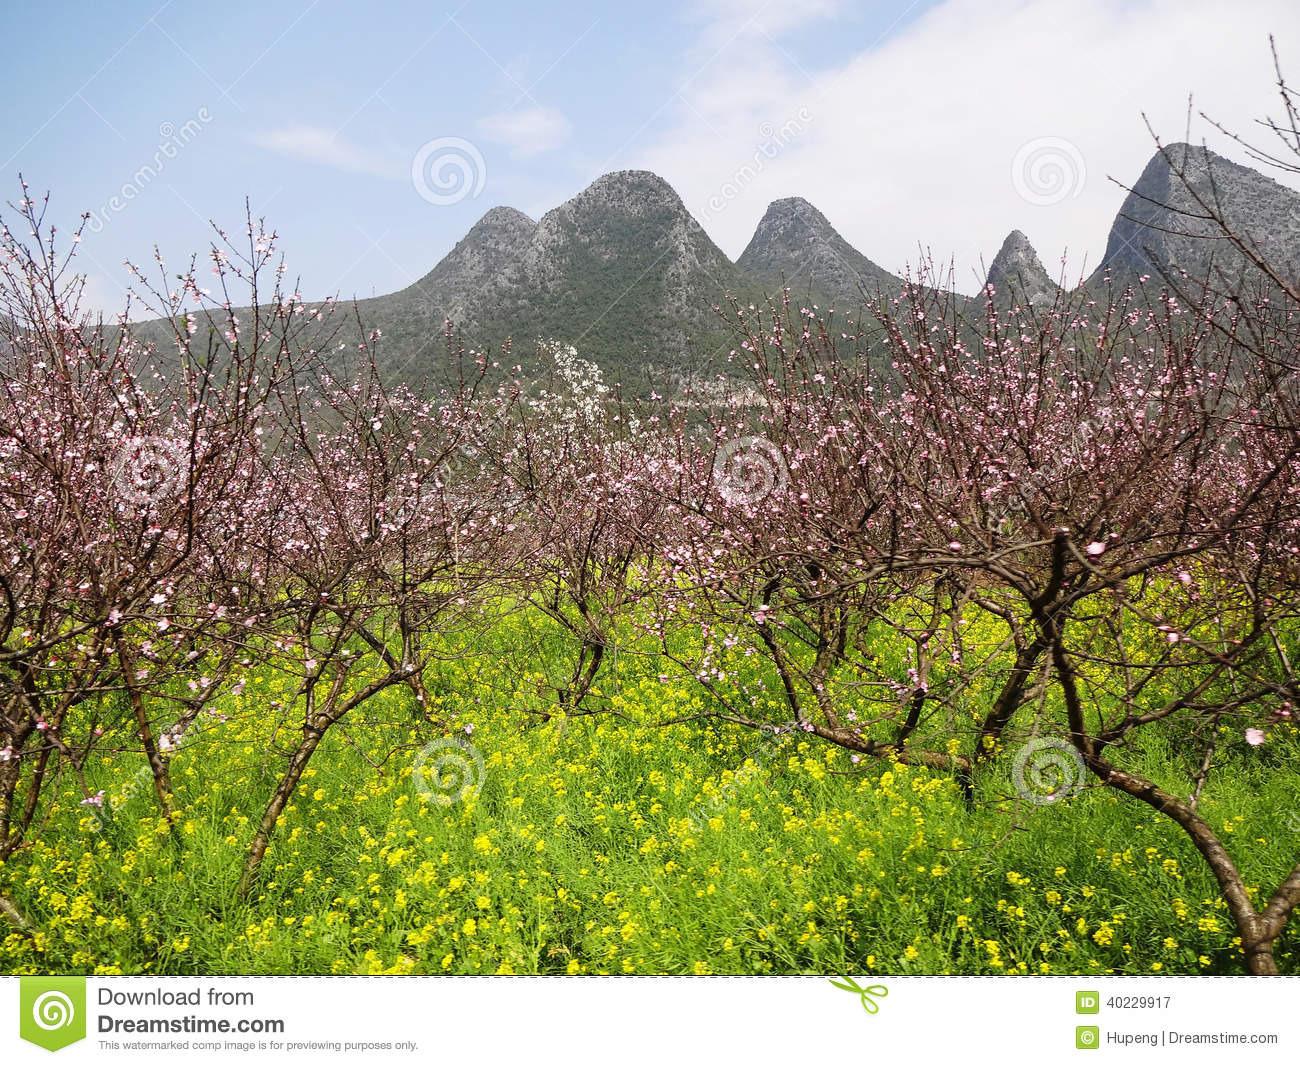 Peach blossom with flowers